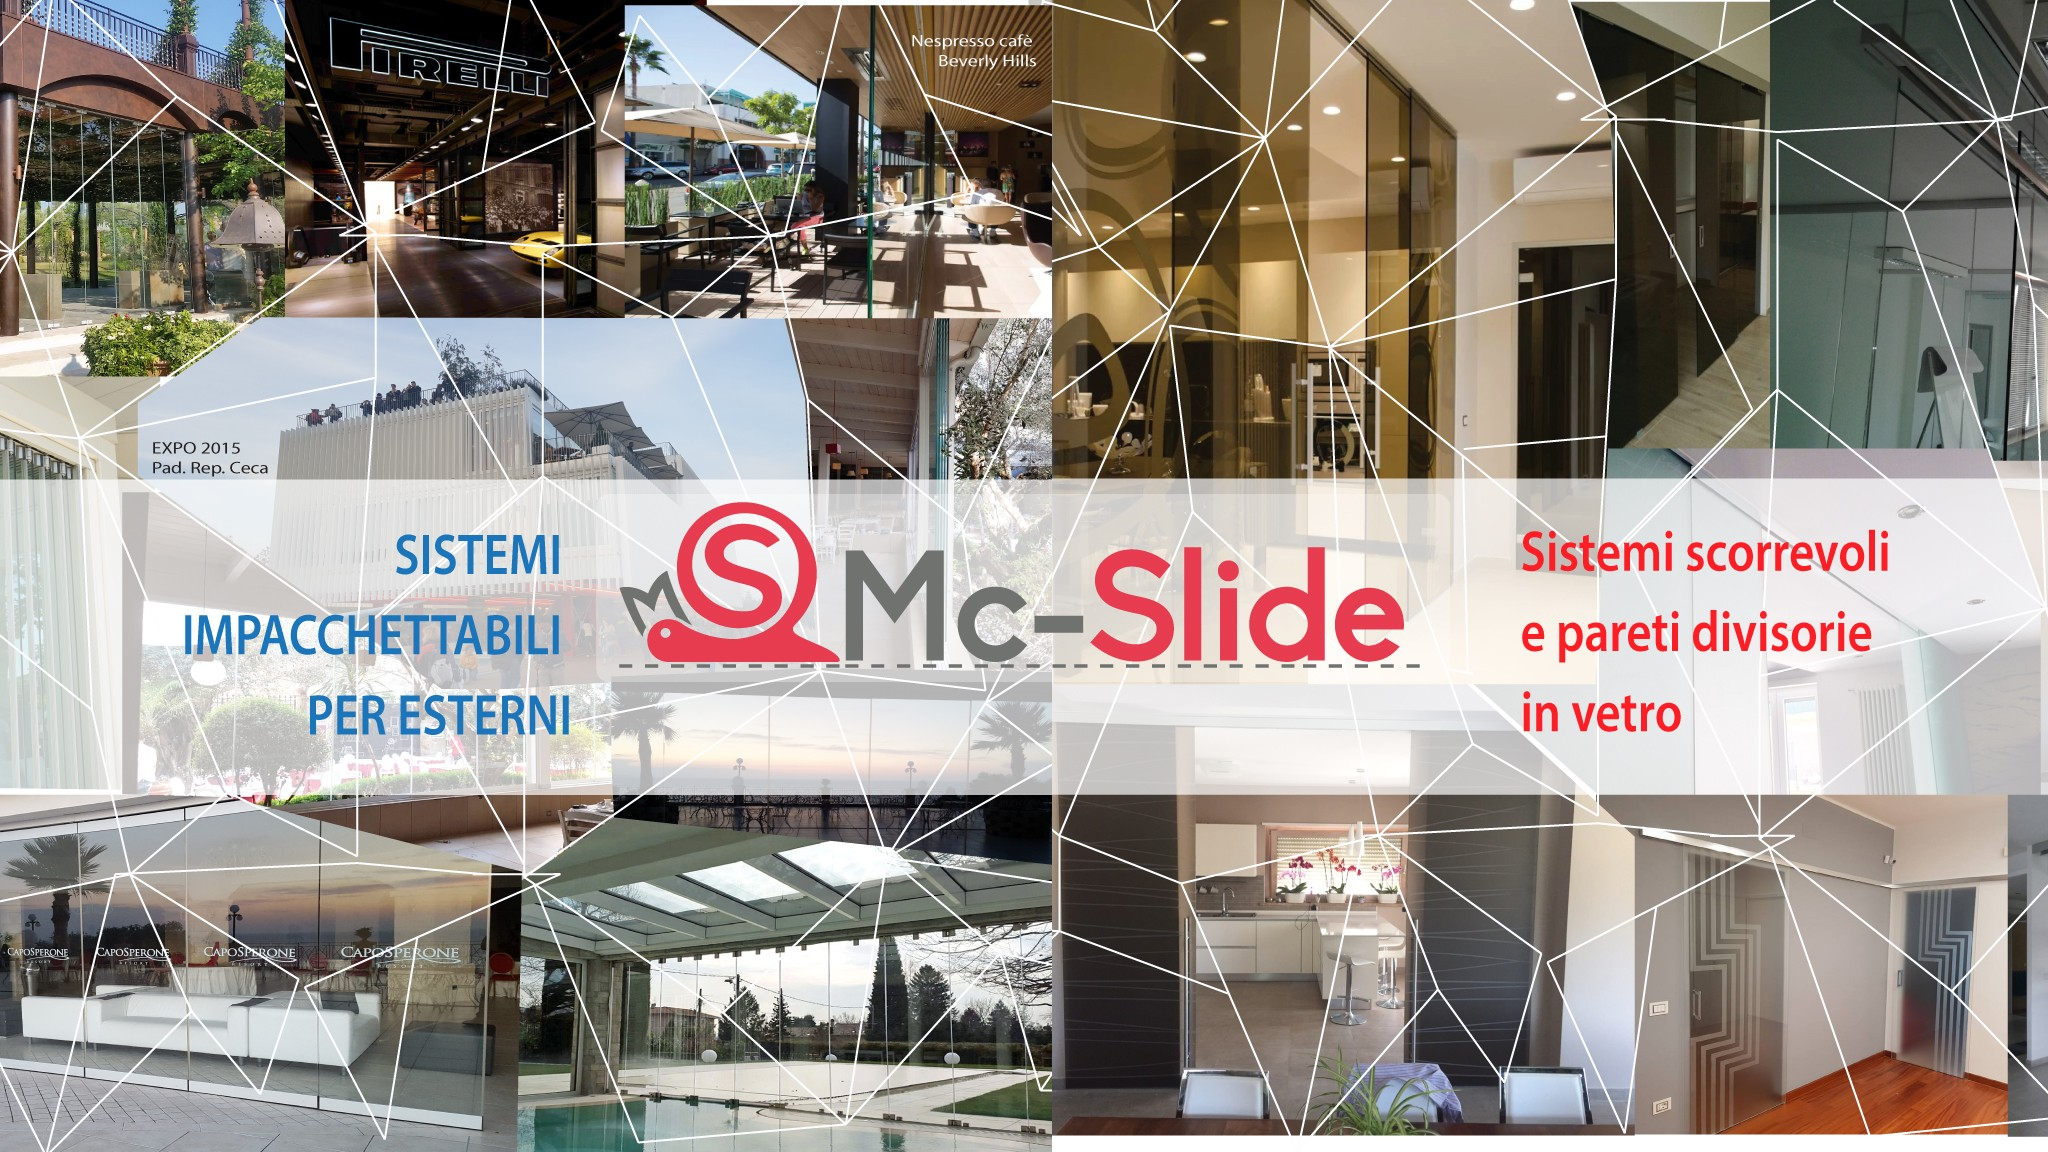 Pareti Divisorie In Vetro mc - slide | linkedin